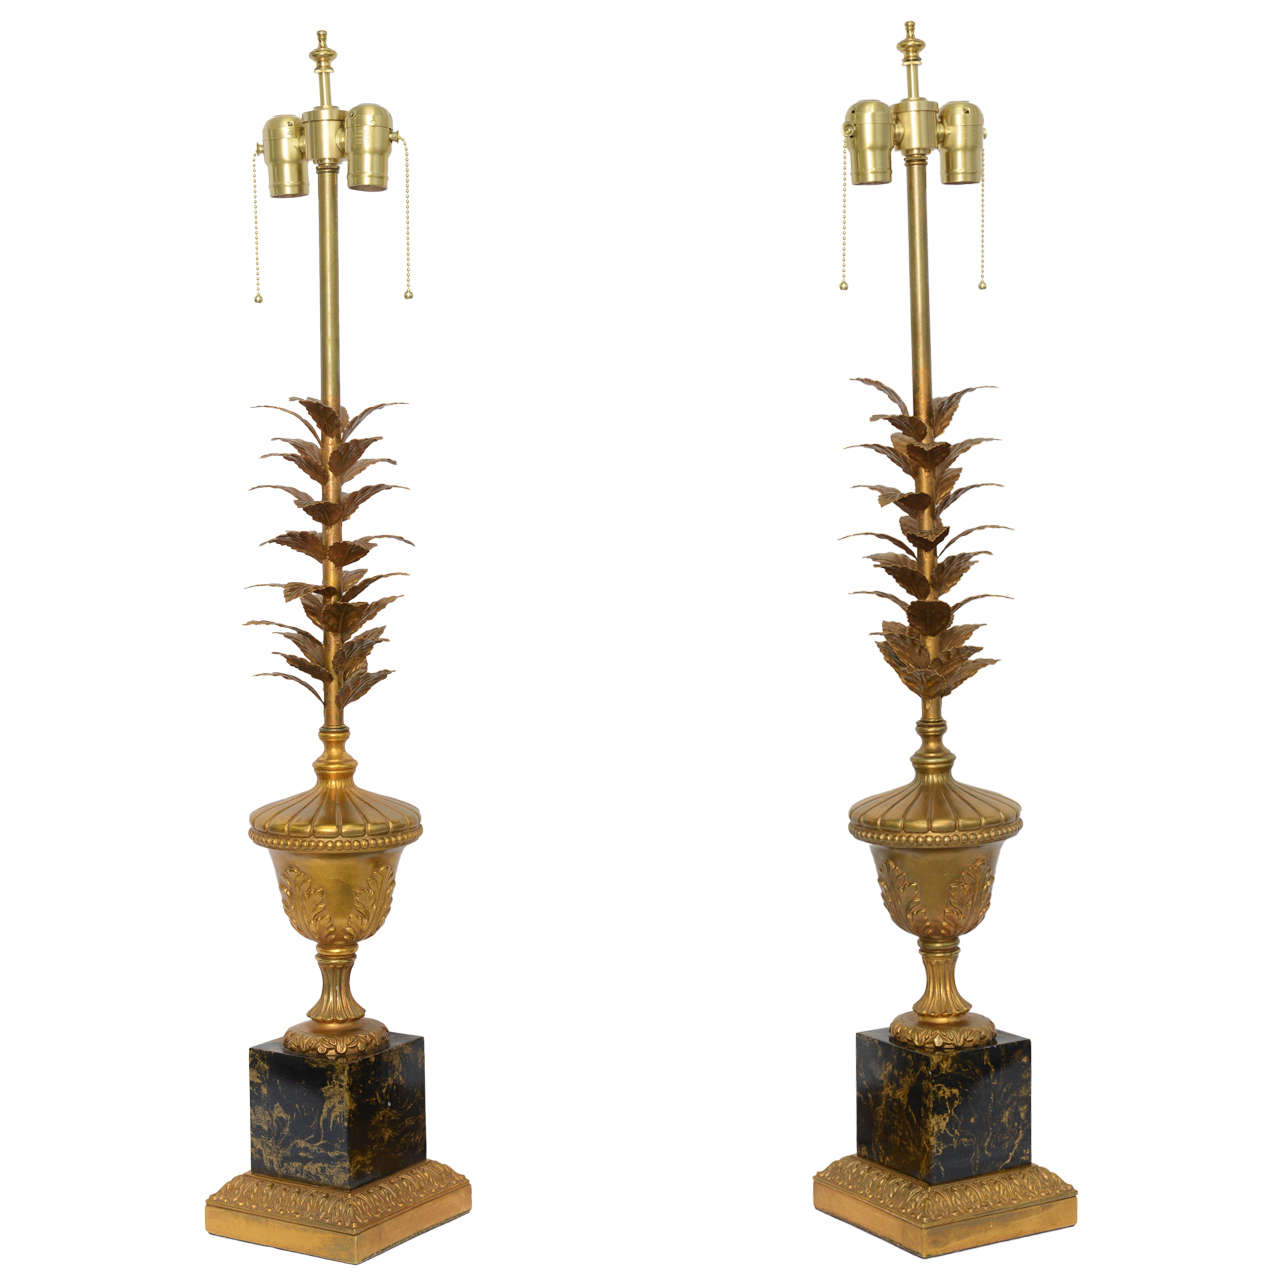 Pair of 1950s Modern Neoclassical Style Gilt and Faux Marble Table Lamps